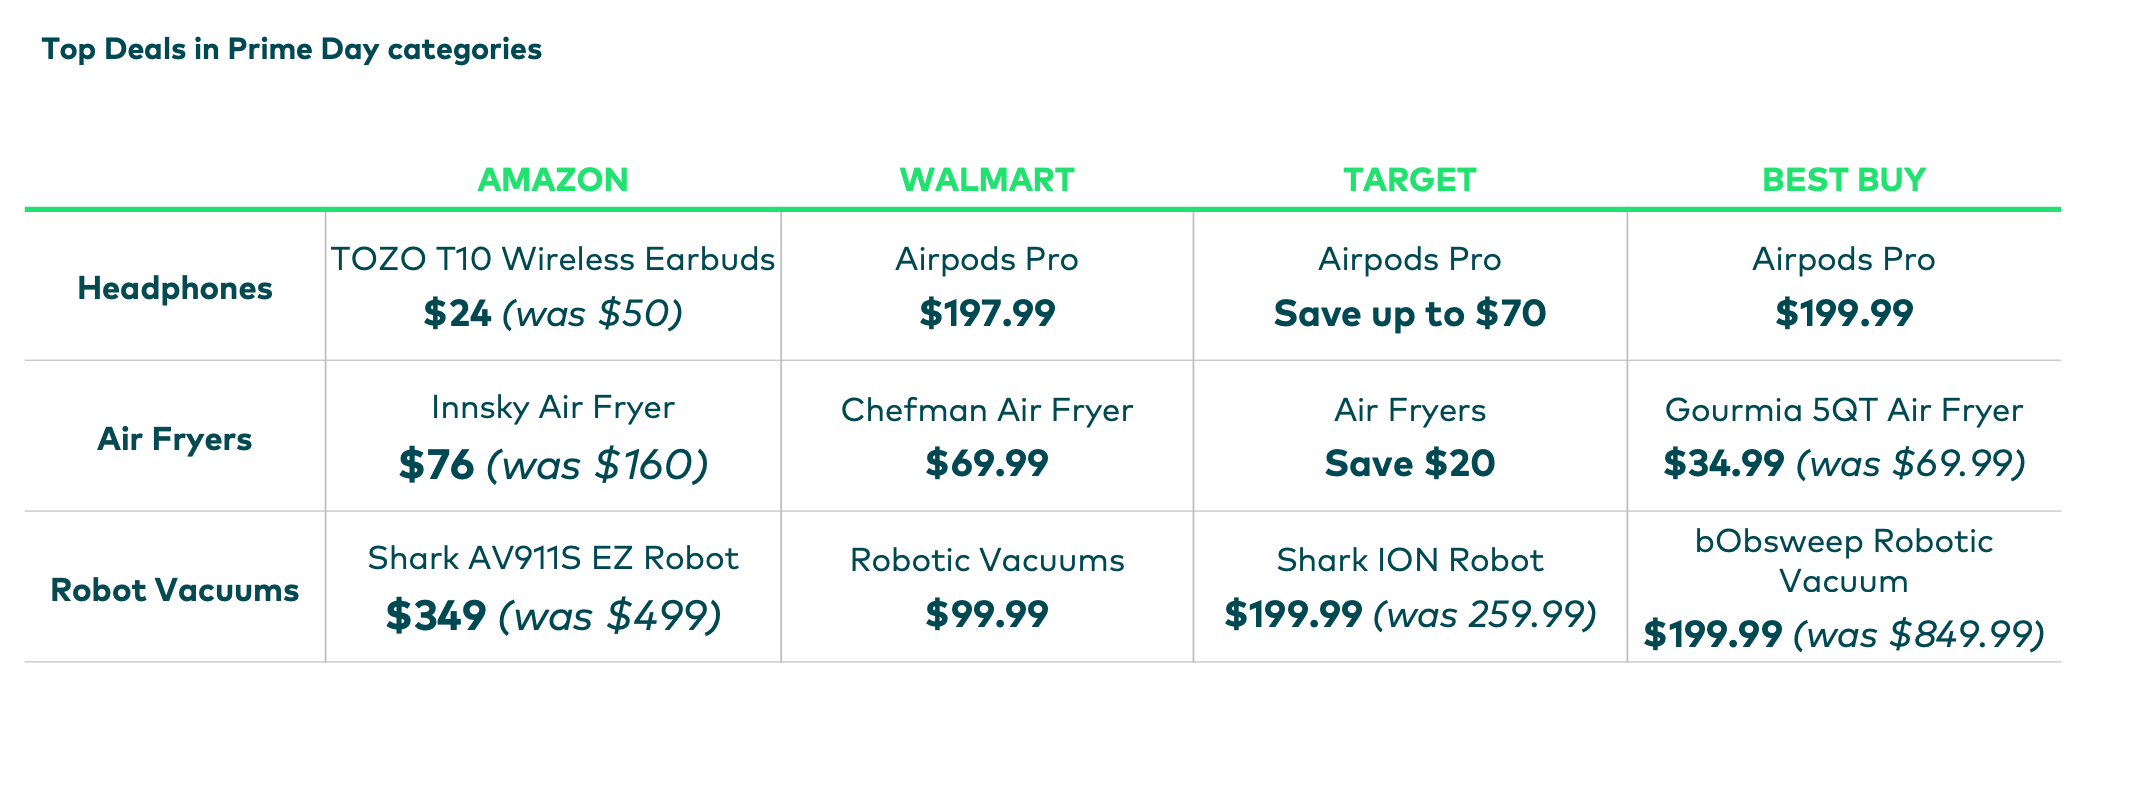 top deals on prime day 2021